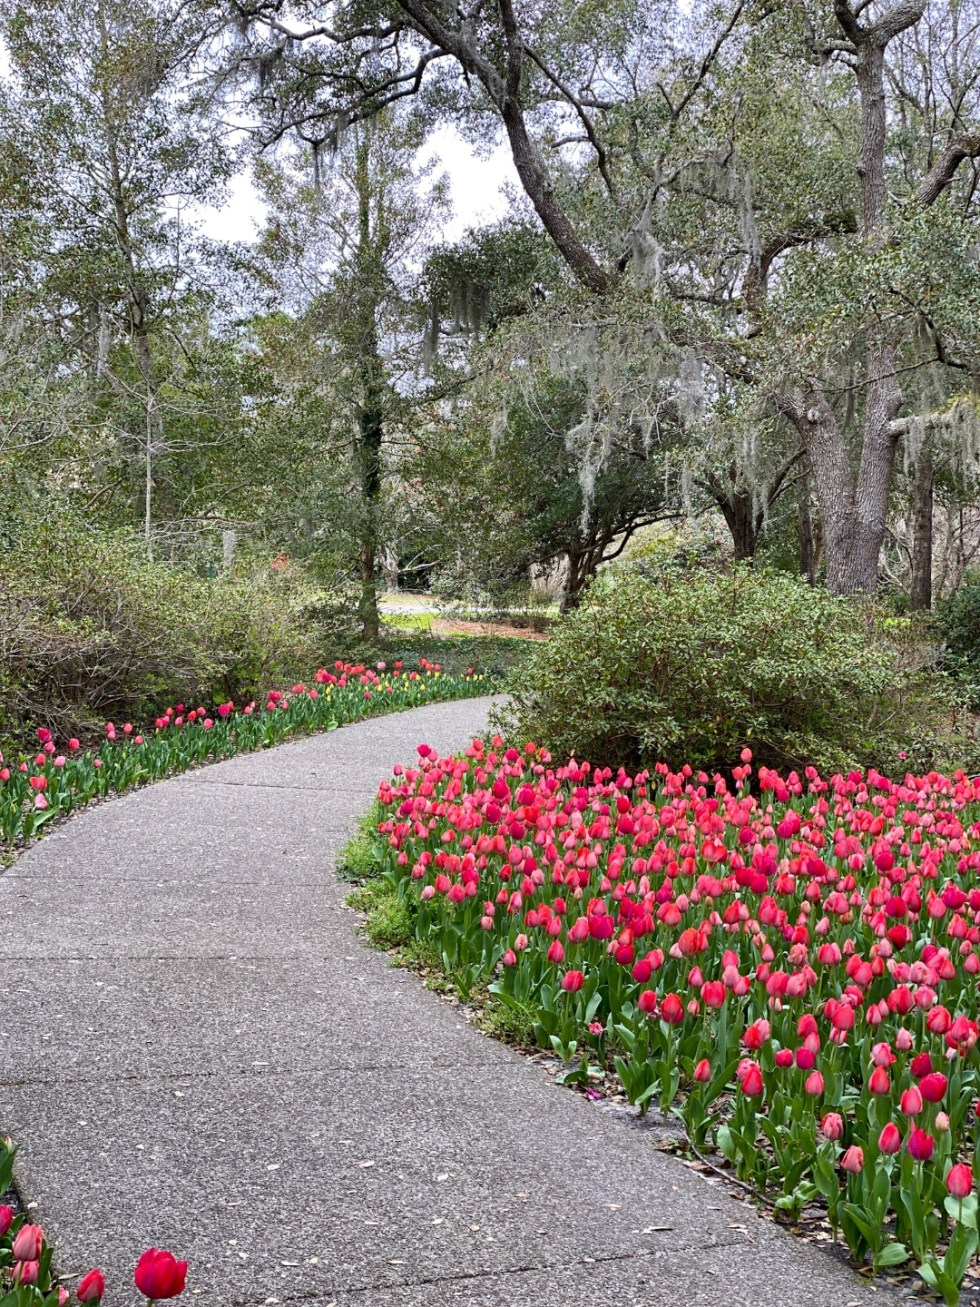 A Spring Weekend in Wilmington, NC: the Best Things to Do - I'm Fixin' To - @imfixintoblog |Weekend in Wilmington by popular NC travel blog, I'm Fixin' To: image of pink tulips growing next to a paved walking path.